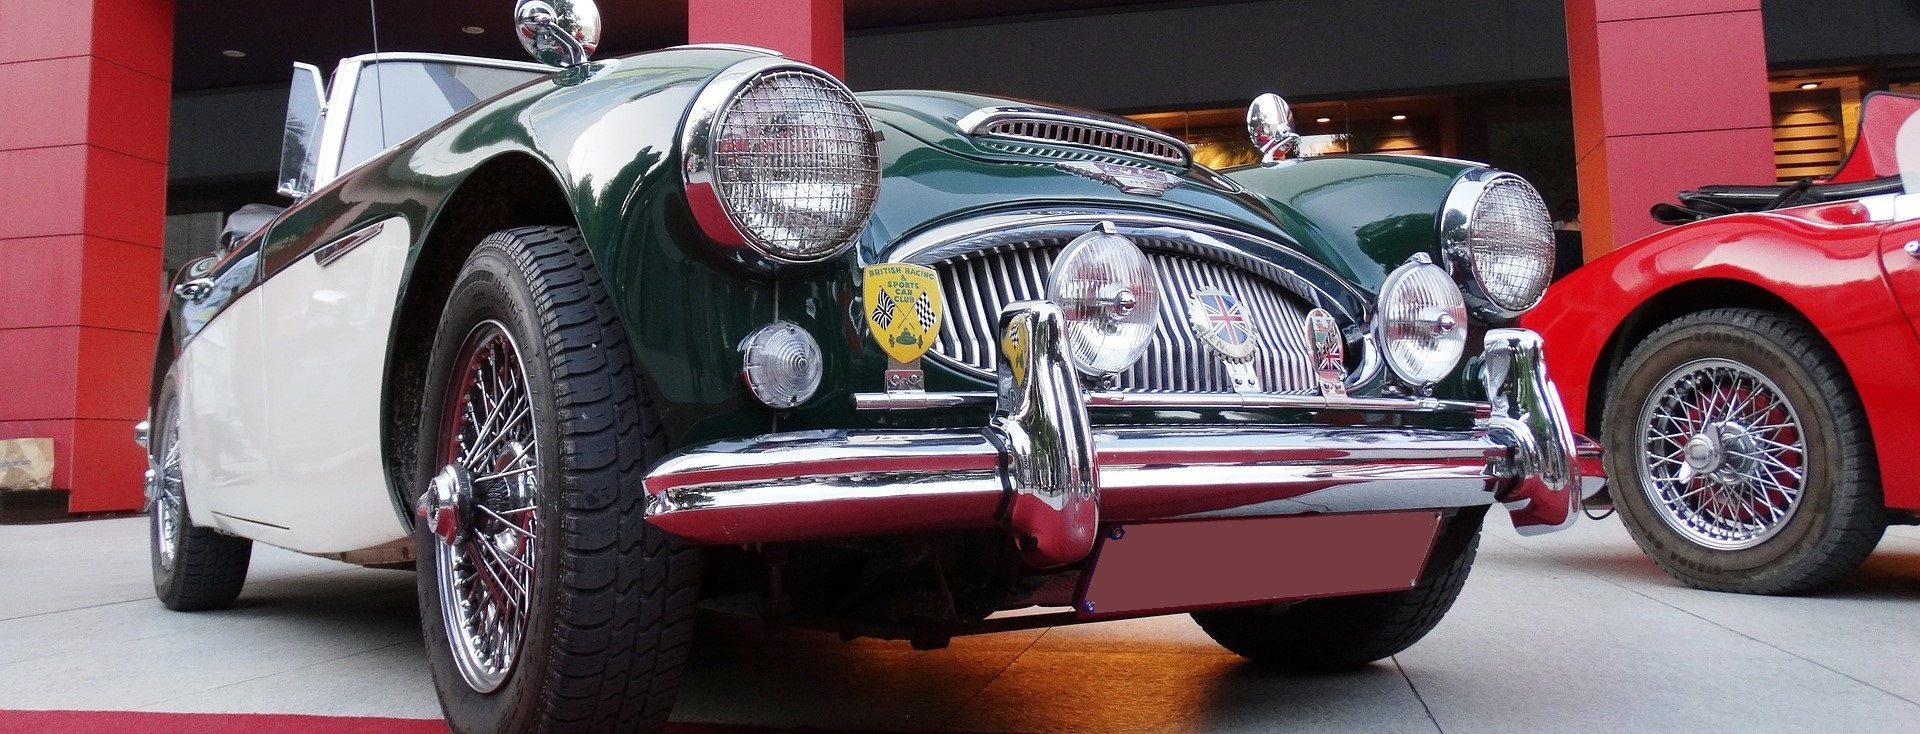 Oldtimer Jaguar in Havre de Grace, Maryland | Breast Cancer Car Donations